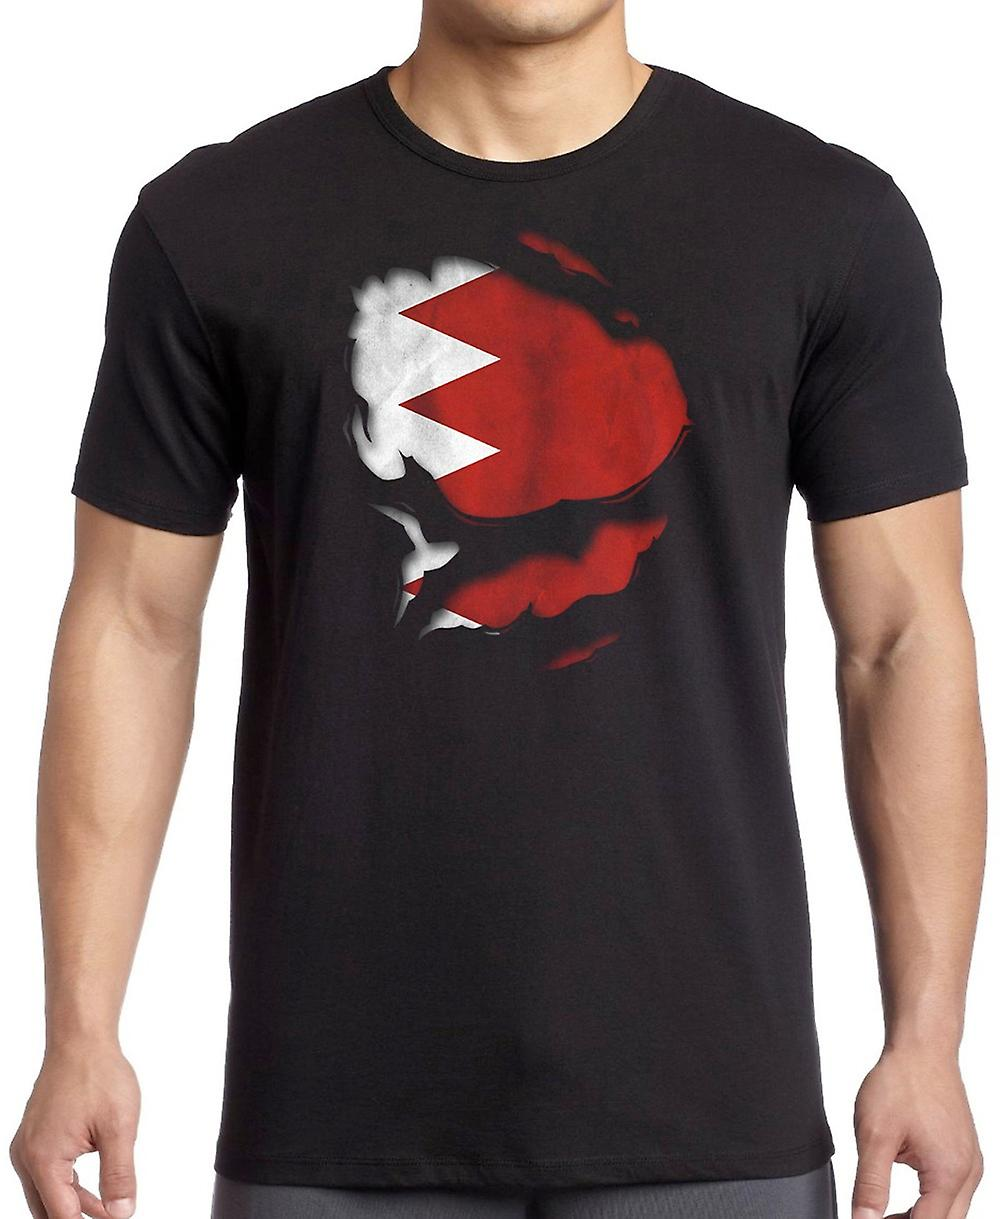 Bahrain Bahranian Ripped Effect Under Shirt T Shirt